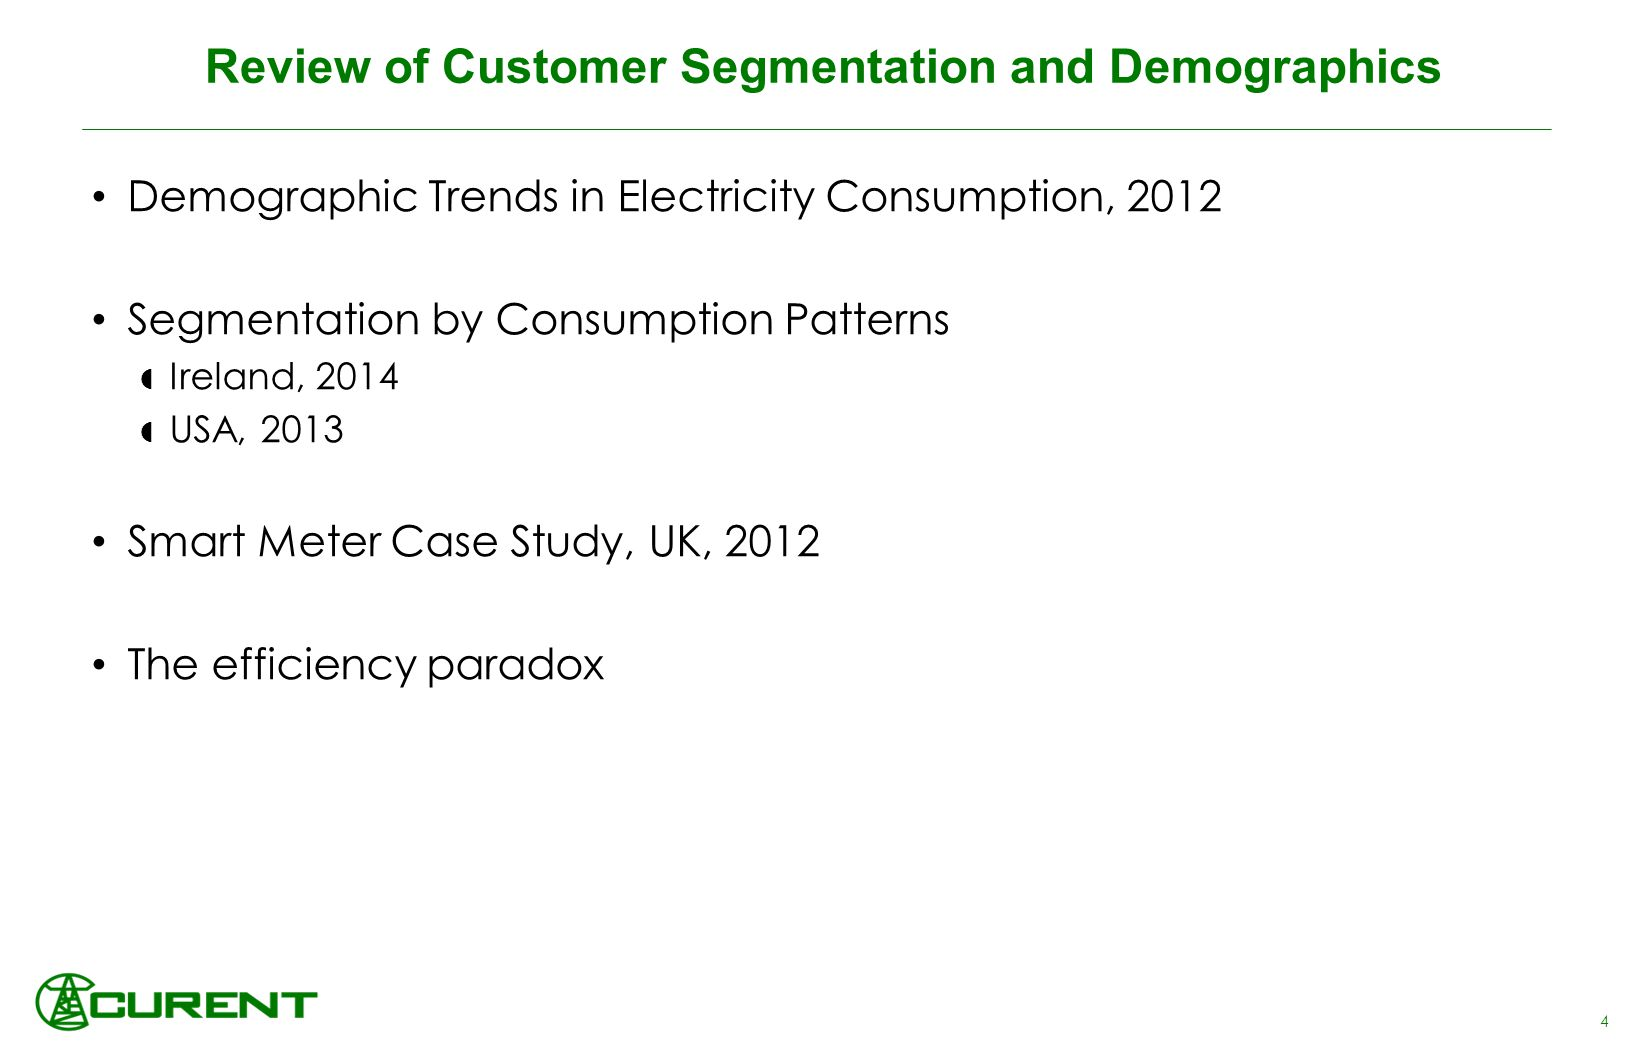 Review of Customer Segmentation and Demographics 4 Demographic Trends in Electricity Consumption, 2012 Segmentation by Consumption Patterns  Ireland, 2014  USA, 2013 Smart Meter Case Study, UK, 2012 The efficiency paradox